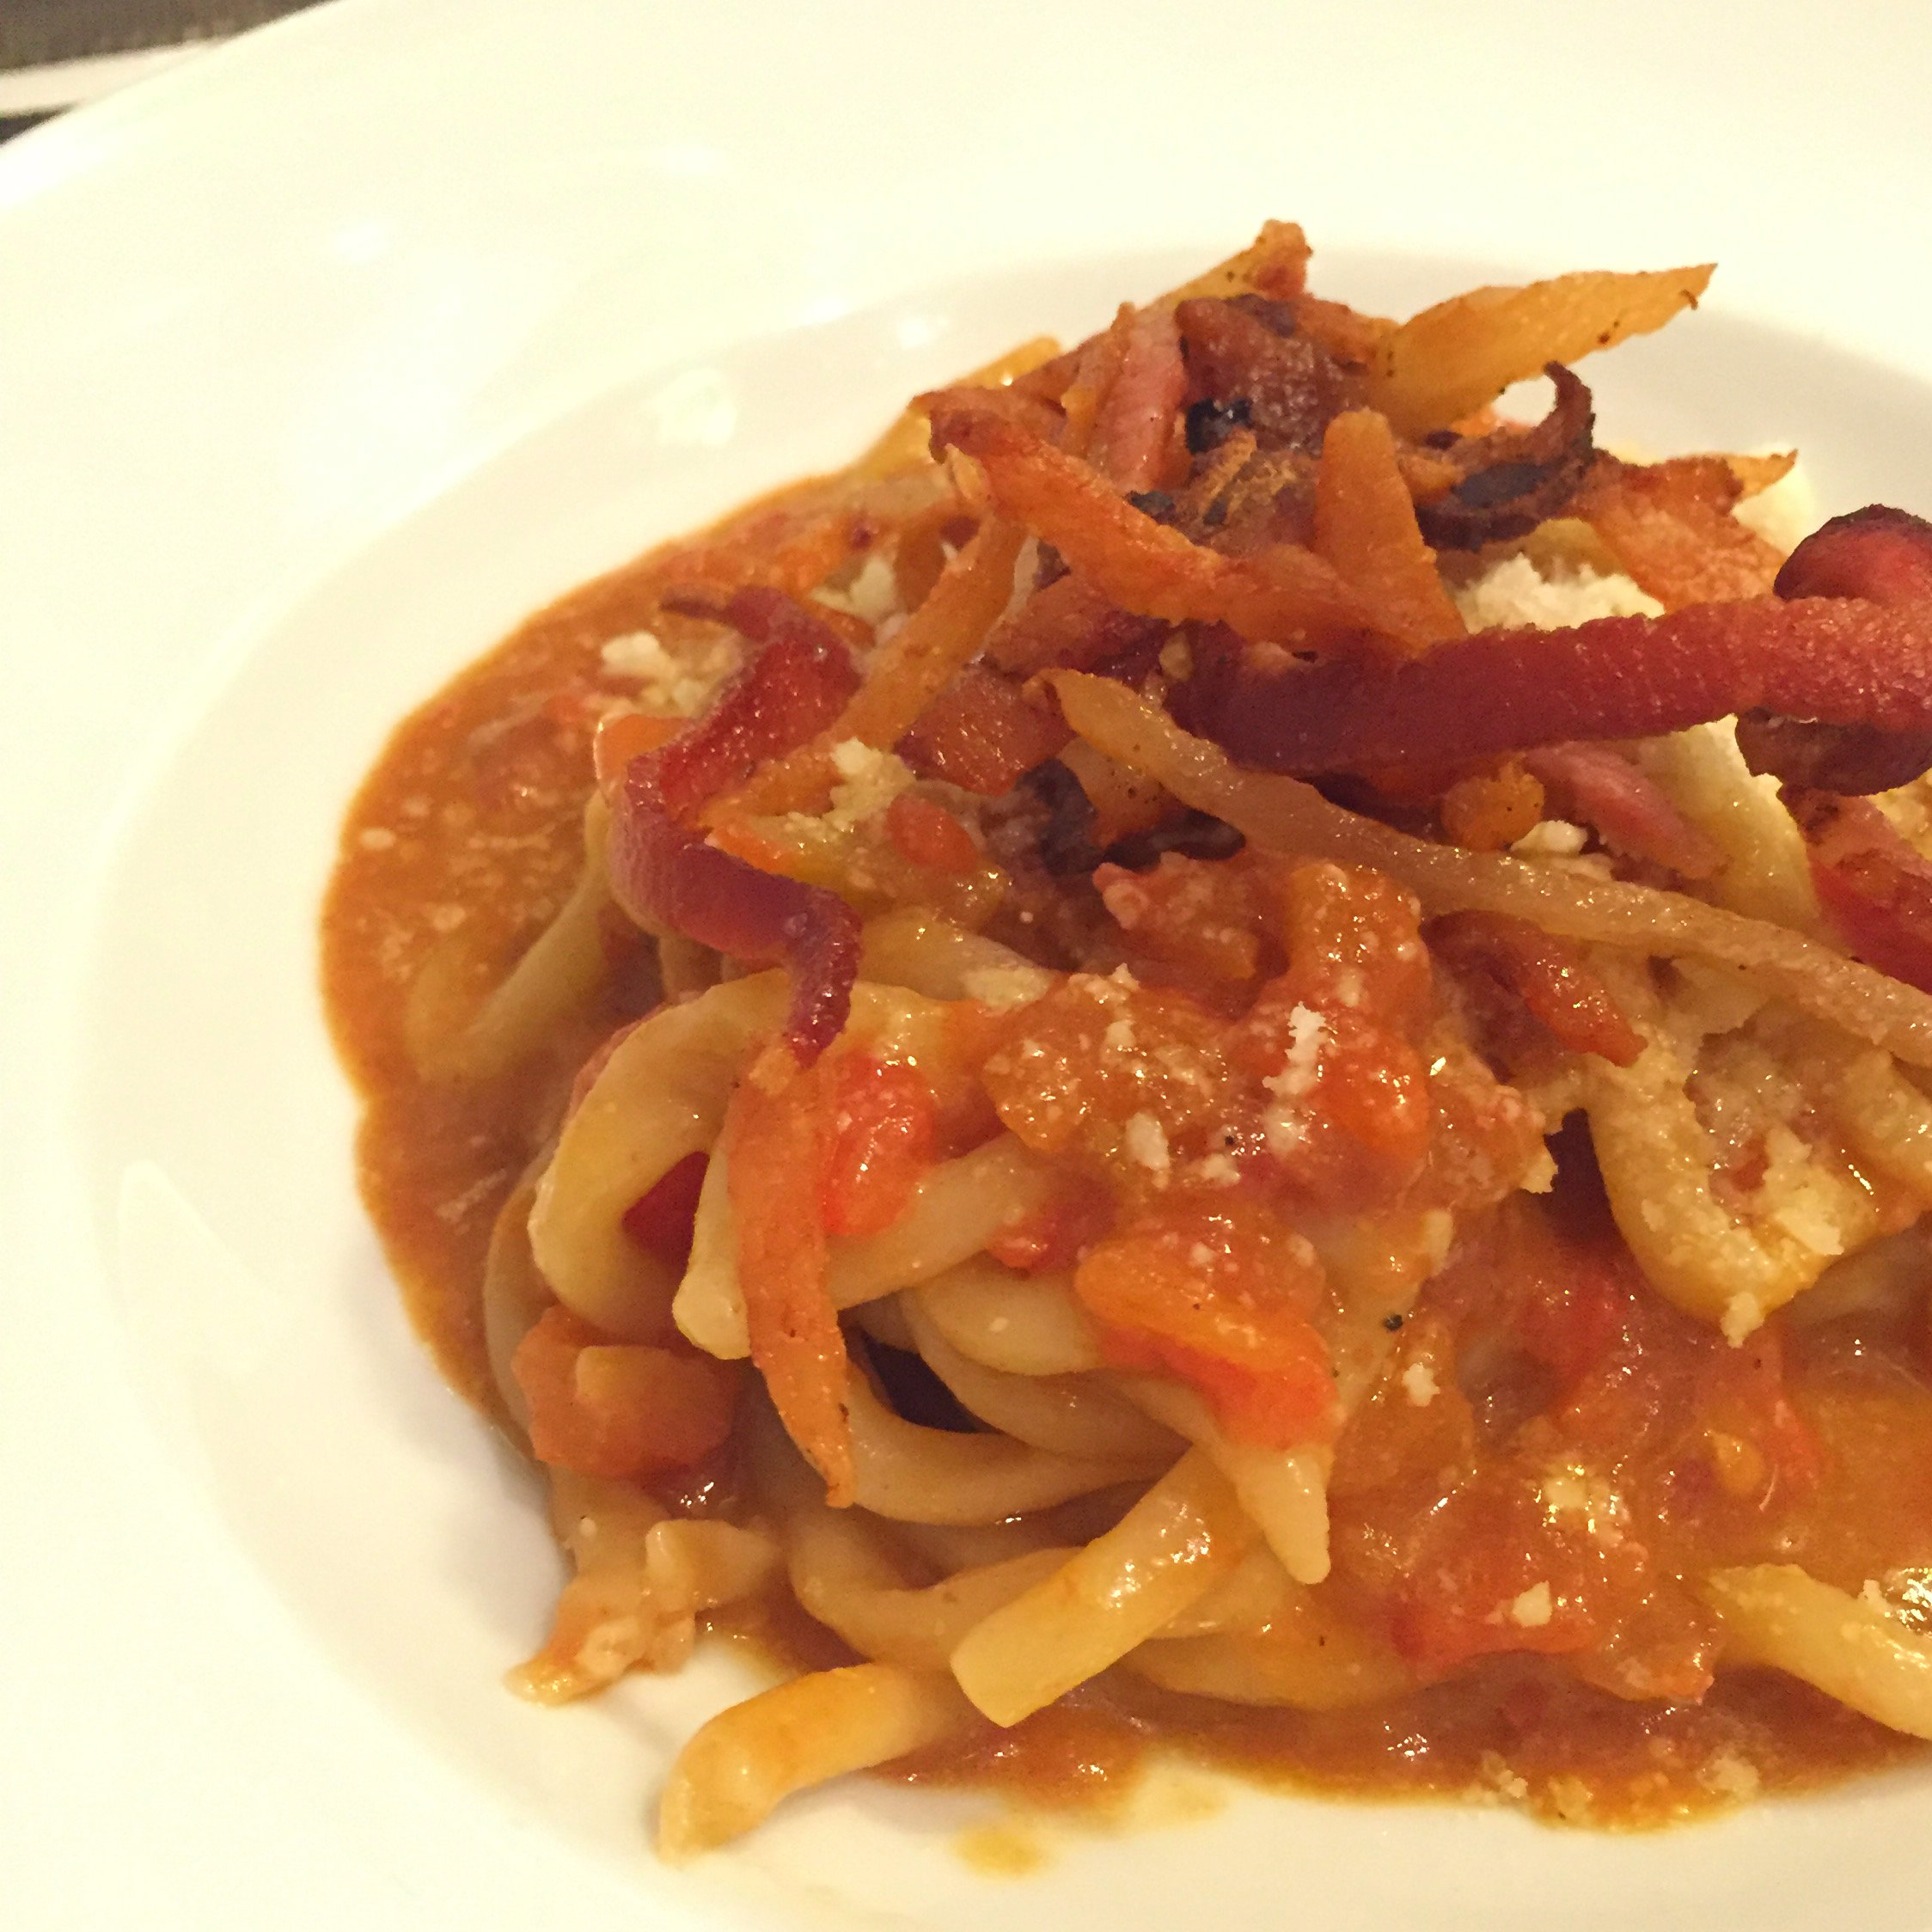 Strozzapreti with tomatoes, parmesan, pecorino, and bacon, Sofia